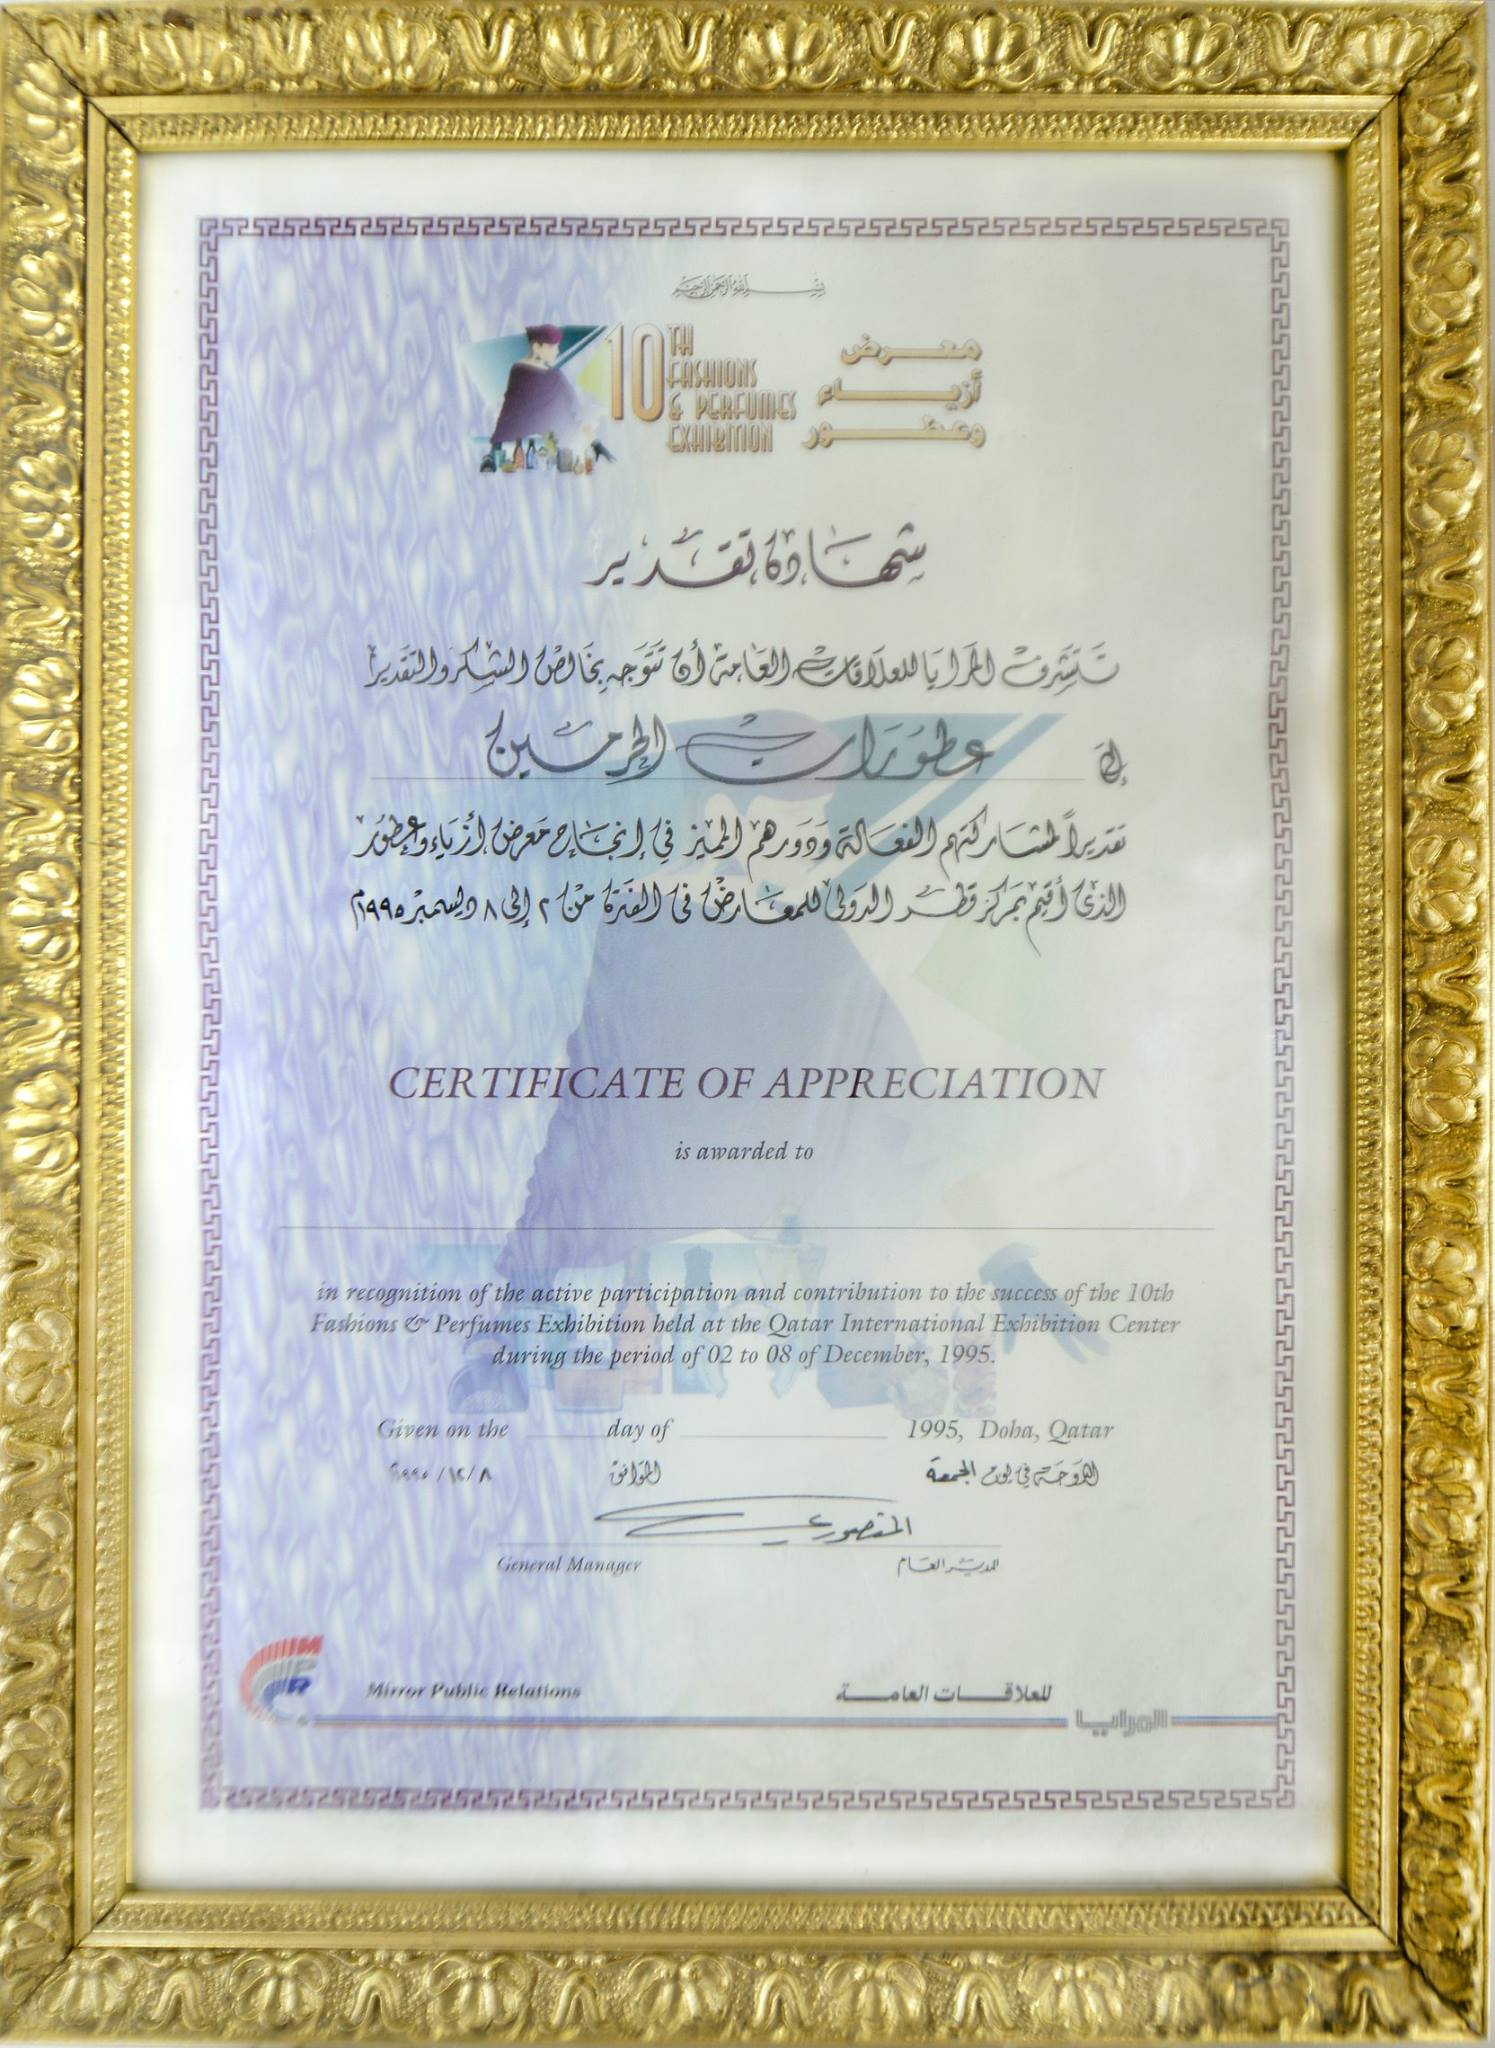 10th IFPEX Exhibition Award